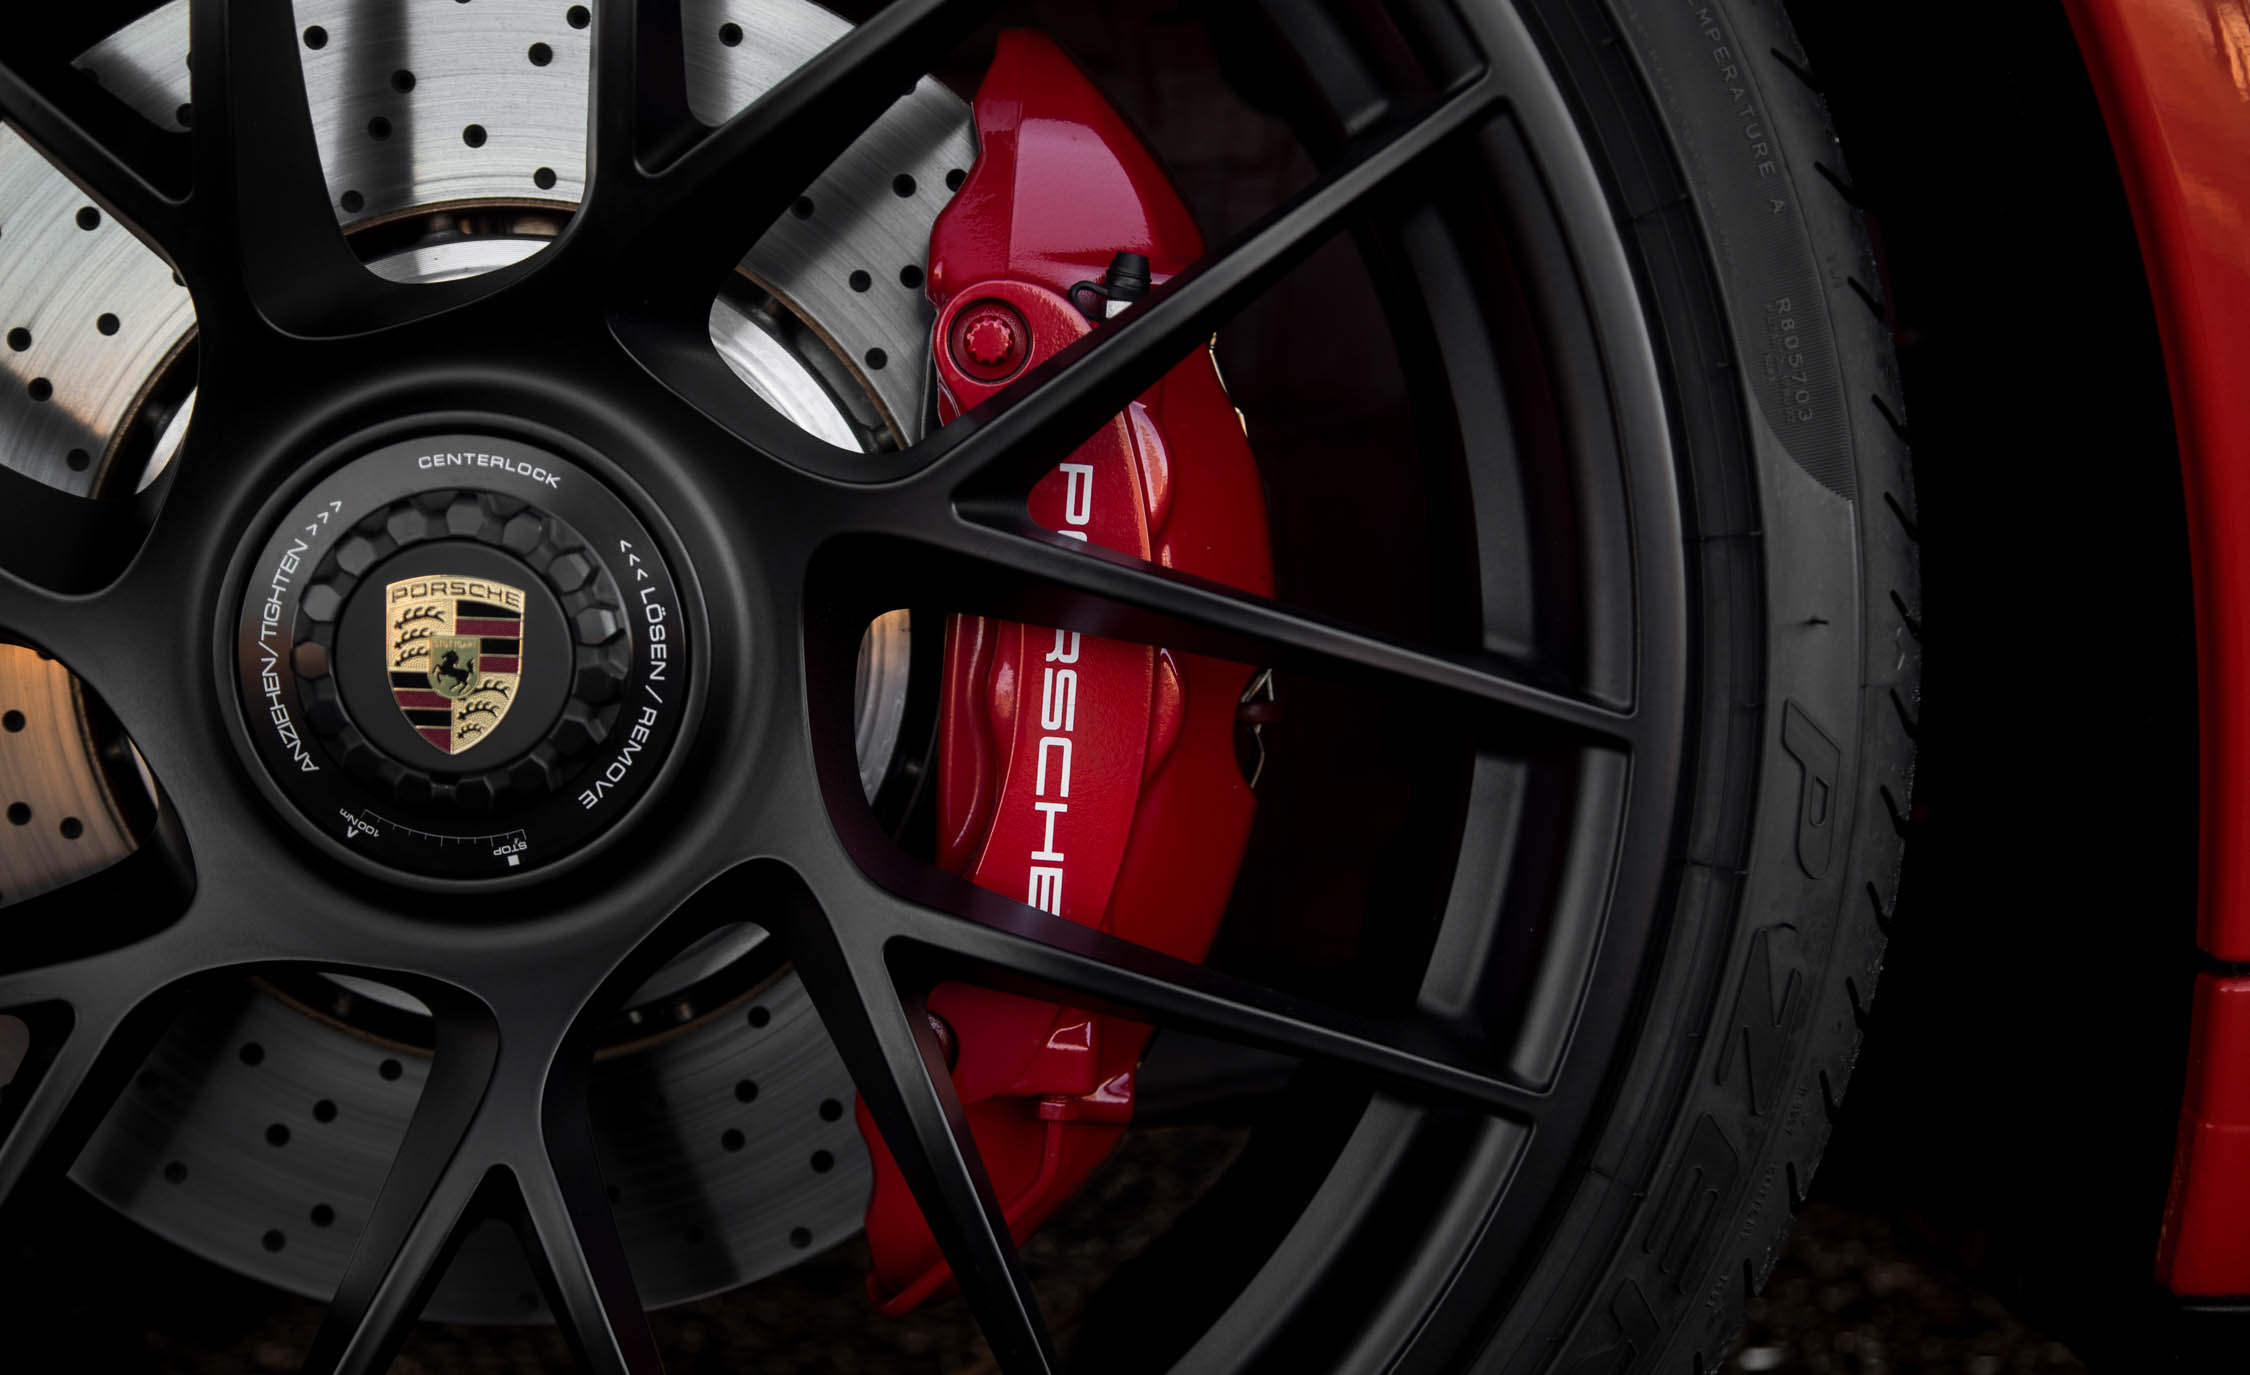 2017 Porsche 911 Targa 4 GTS Exterior View Wheel (Photo 65 of 97)